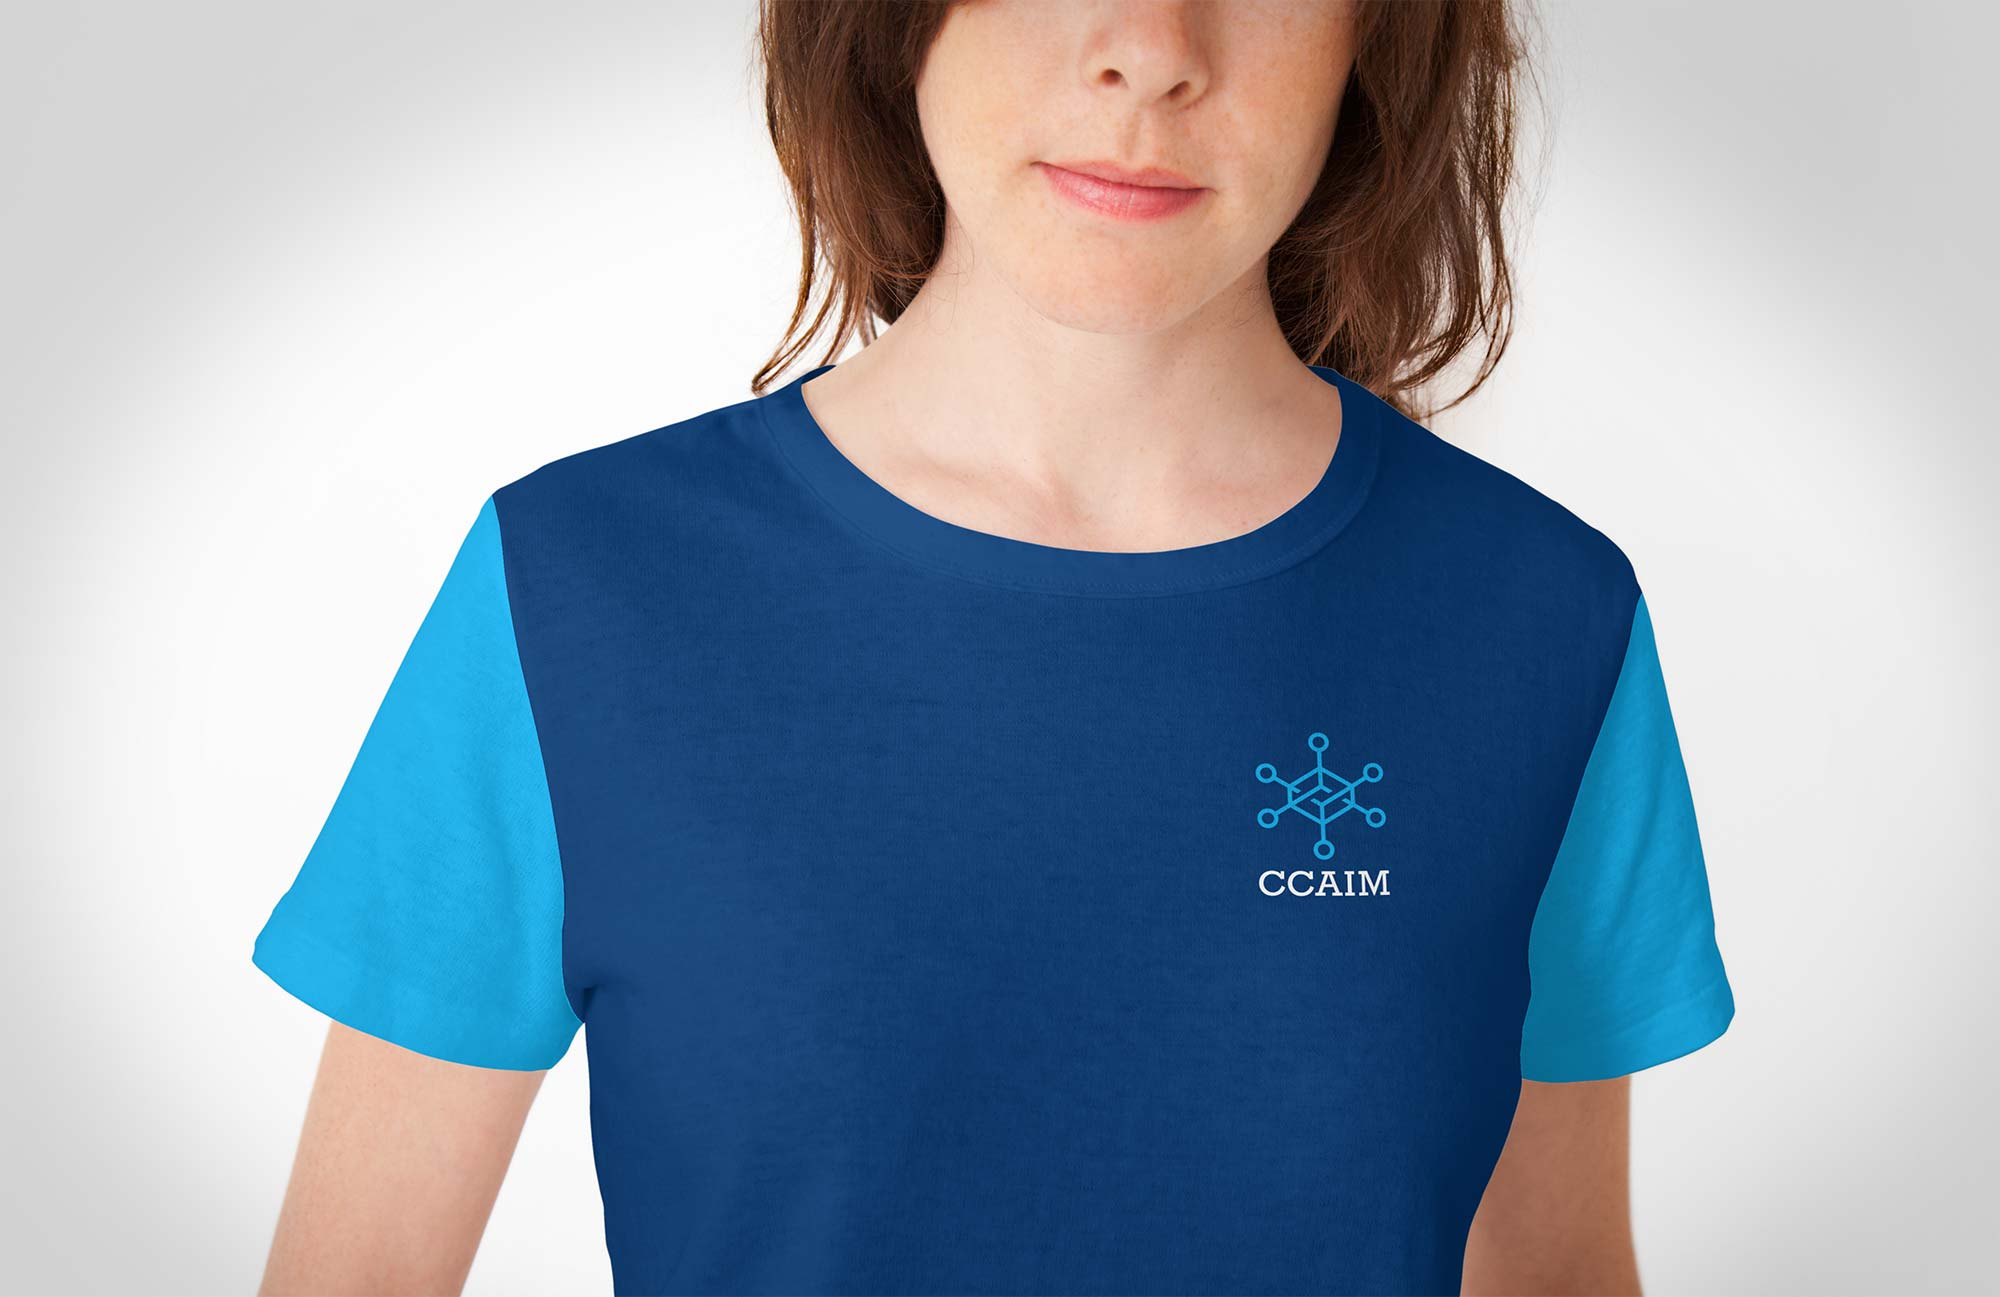 CCAIM Logo Design used on a T-shirt